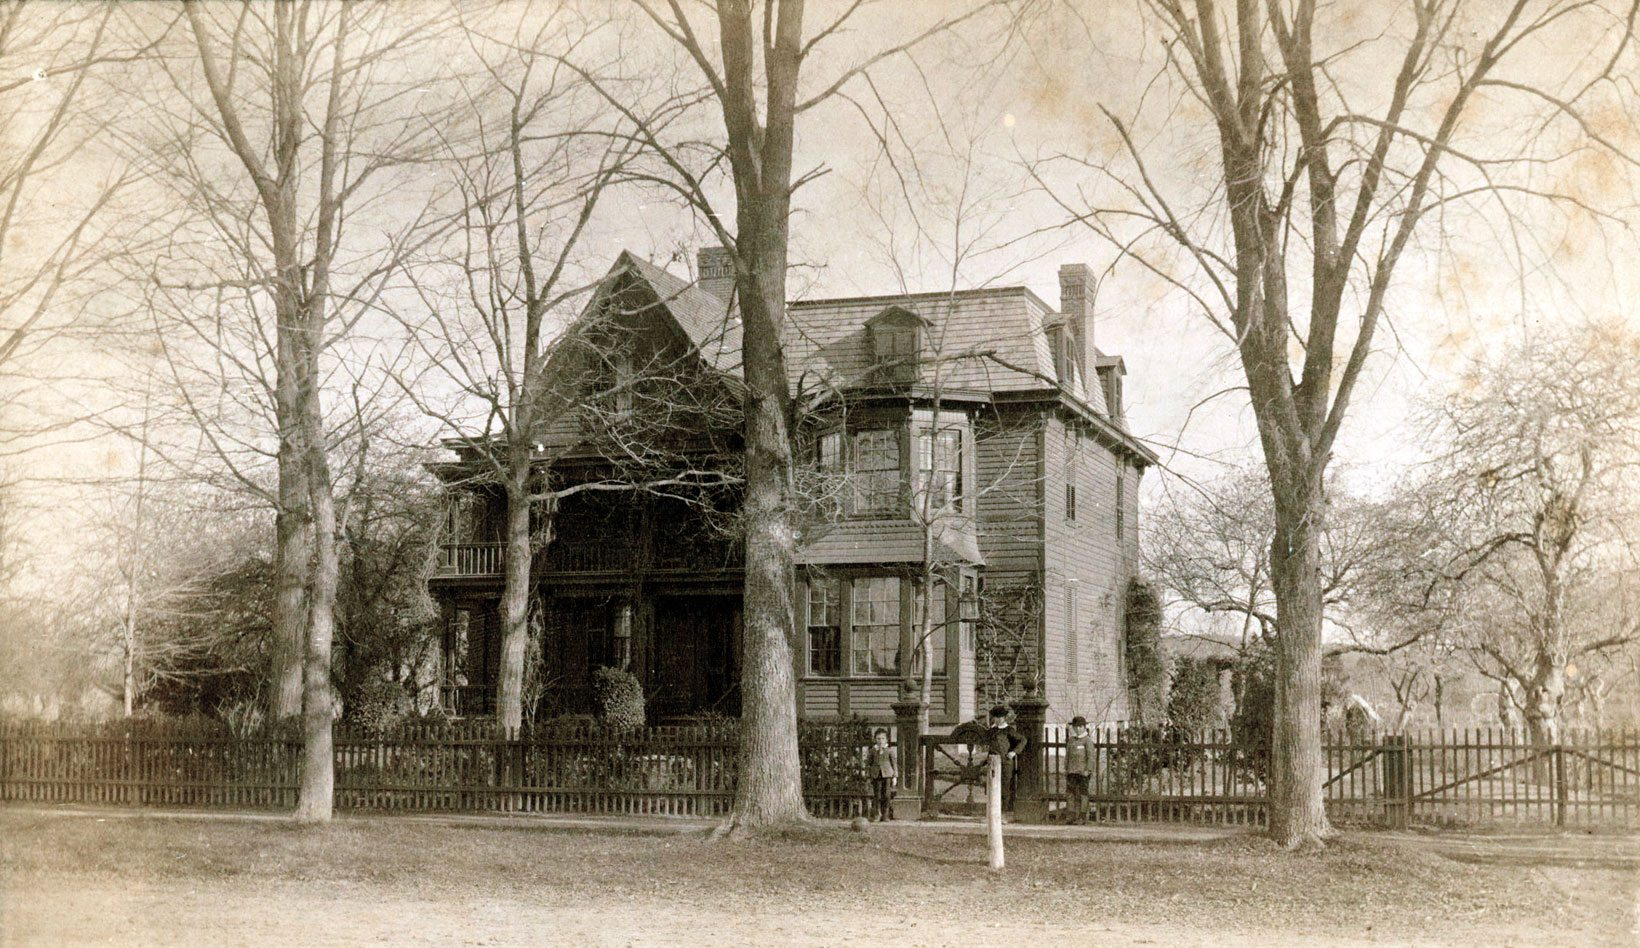 Landmarks: The Disappearance of a Lyme Street House